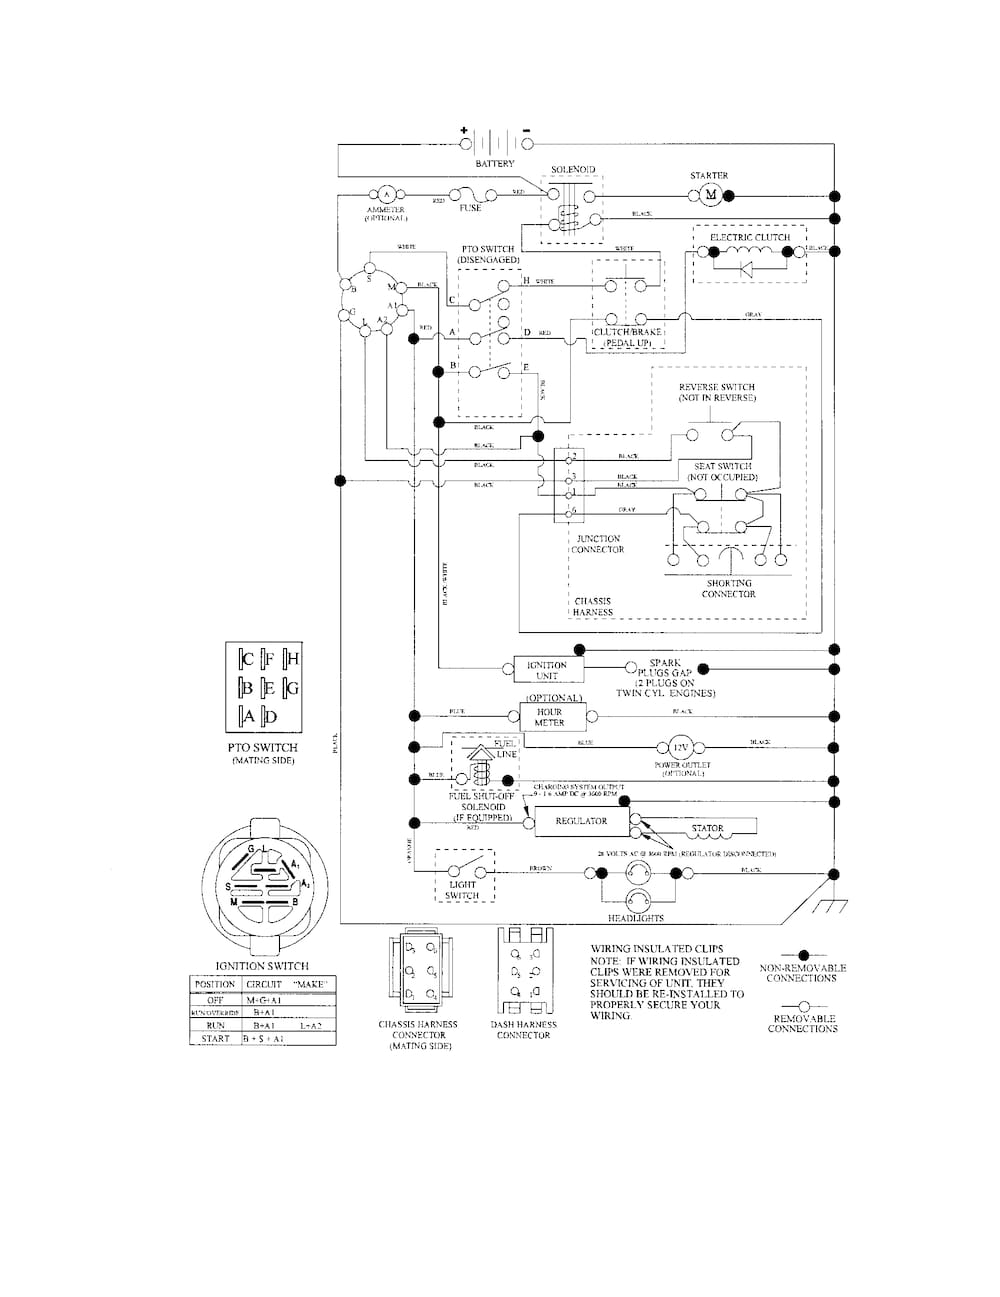 medium resolution of power king 1614 tractor wiring diagram ford tractor tractor ignition switch wiring diagram power king 1616